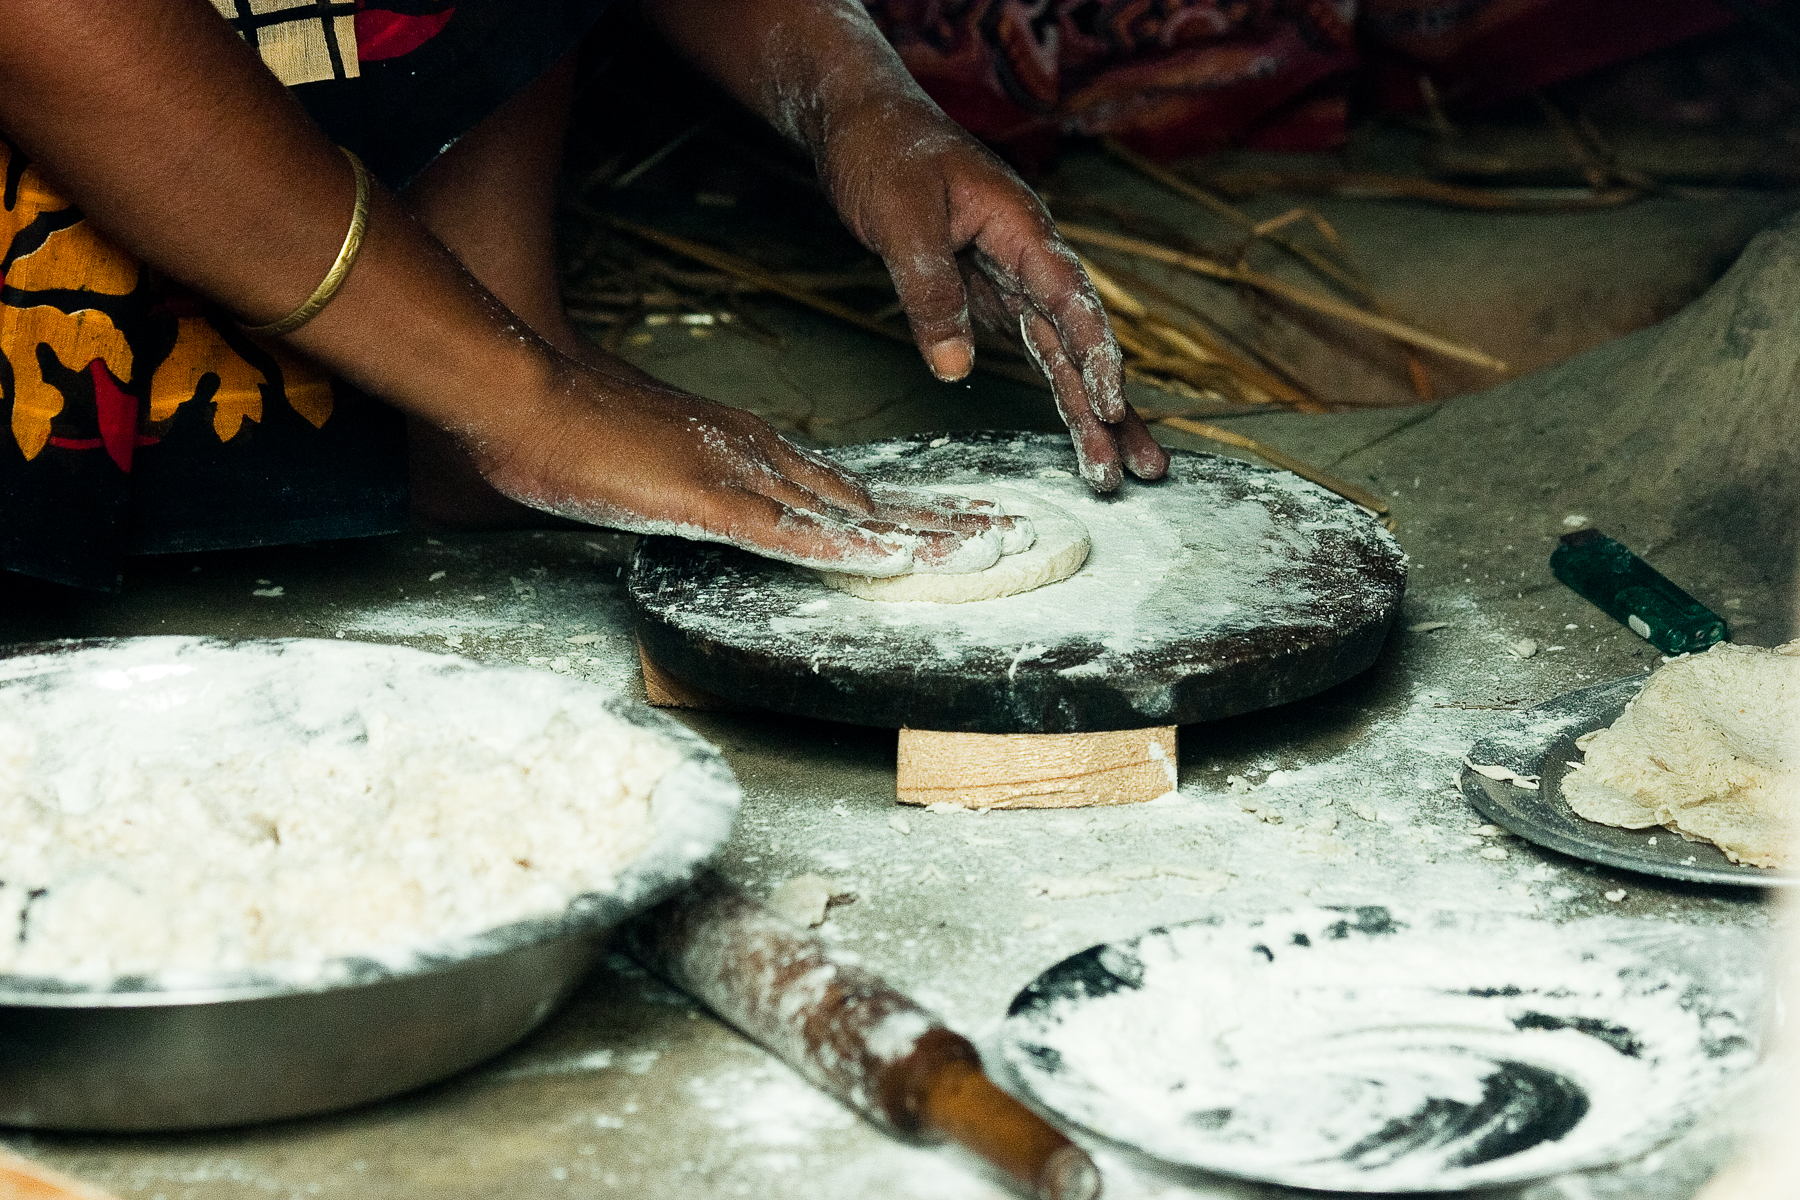 A woman in Bangladesh prepares roti, an unleavened whole wheat bread eaten across the Indian sub-continent. (Photo: S. Mojumder/Drik/CIMMYT)